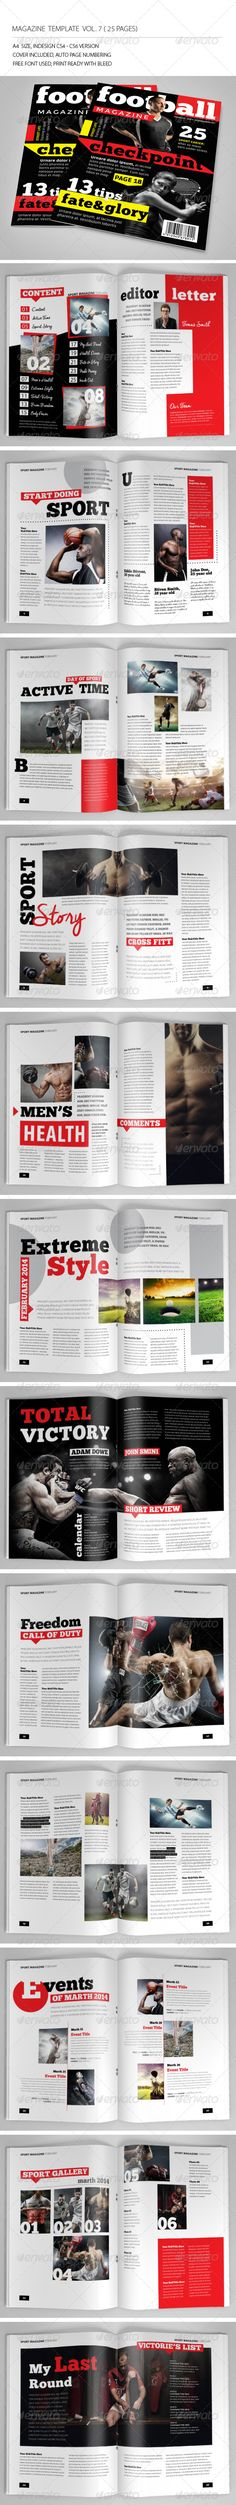 Medical Magazine - Horizontal A5 Template by luckyj Medical Magazine